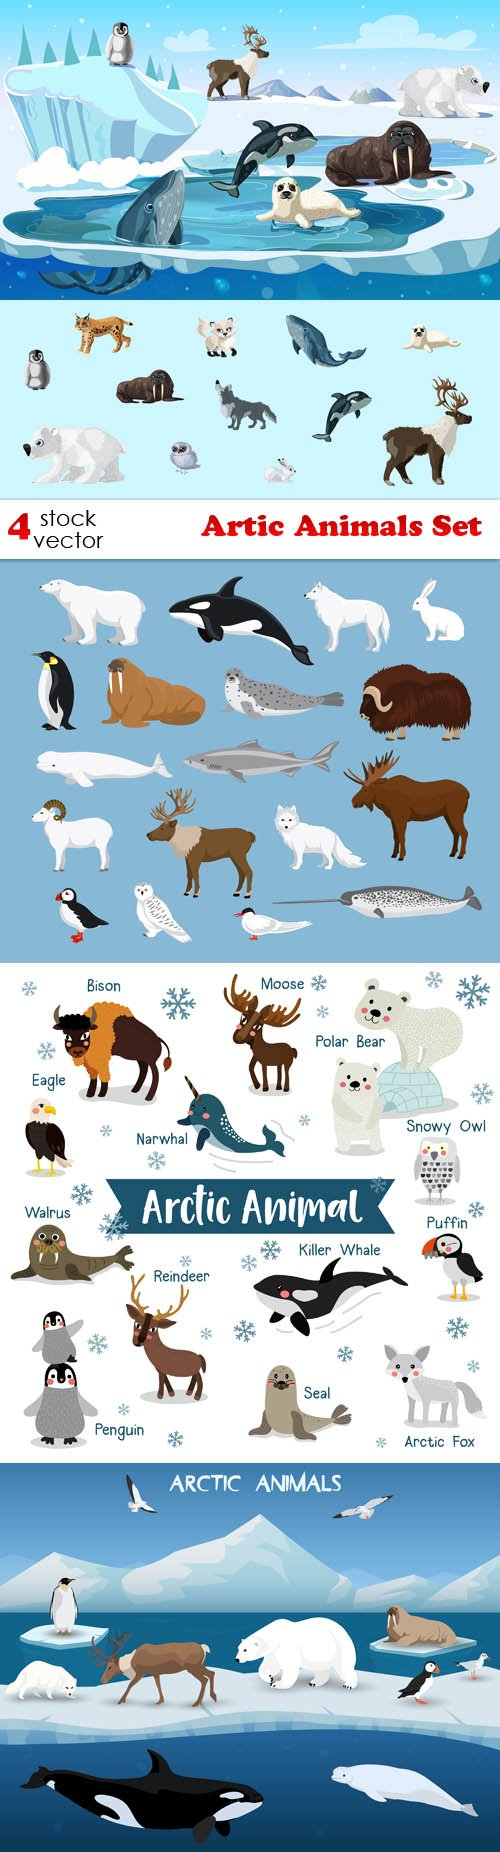 Vectors - Artic Animals Set